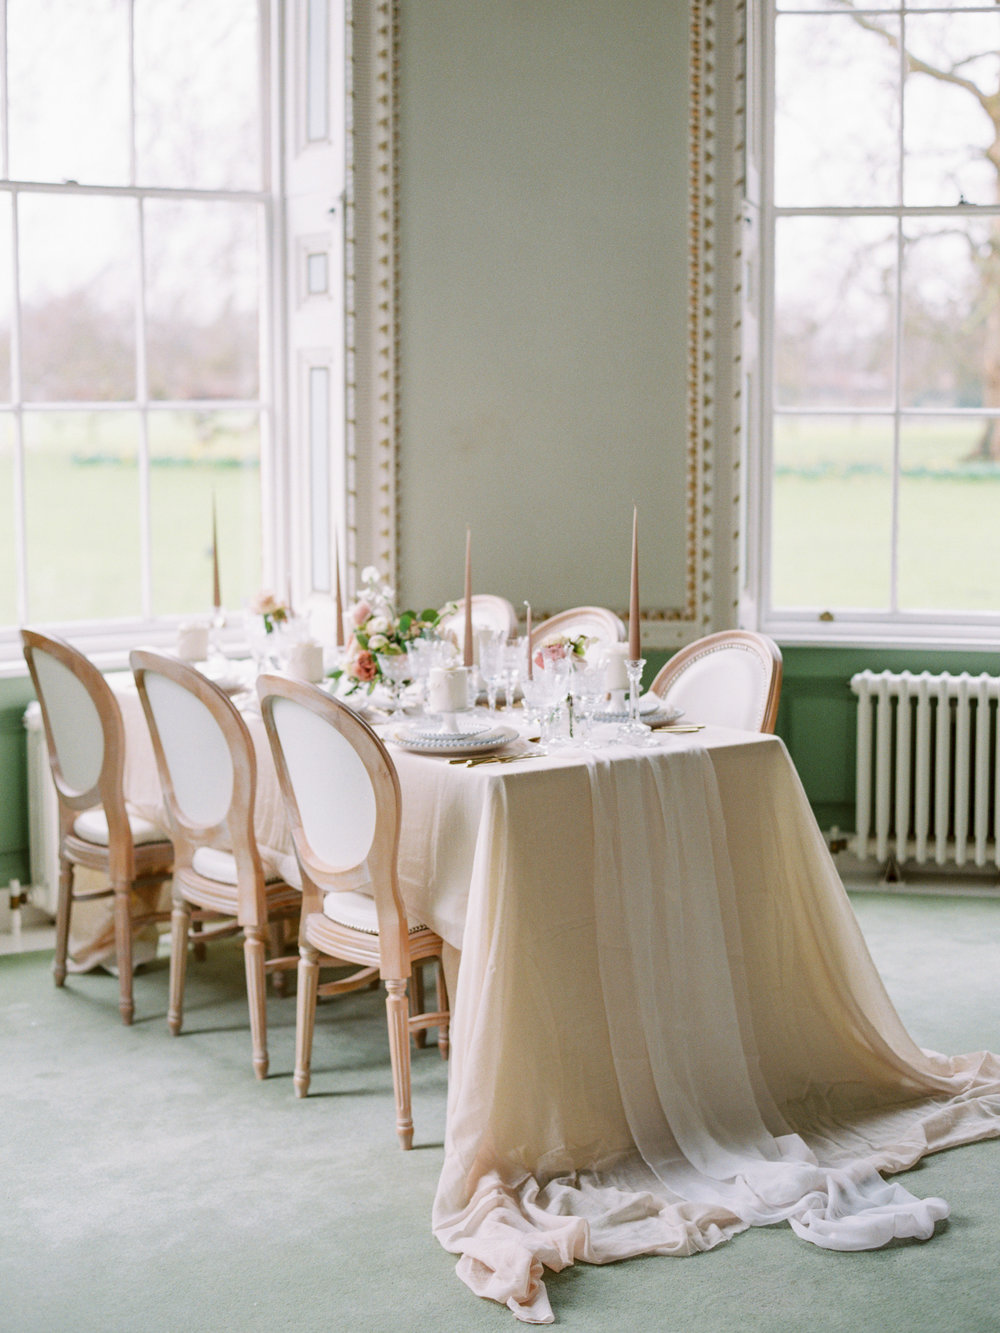 The Timeless Stylist-Elegant and Romantic Wedding Styling-Elegant Flowing Silk Tablecloth and Runner Wedding Tablescape